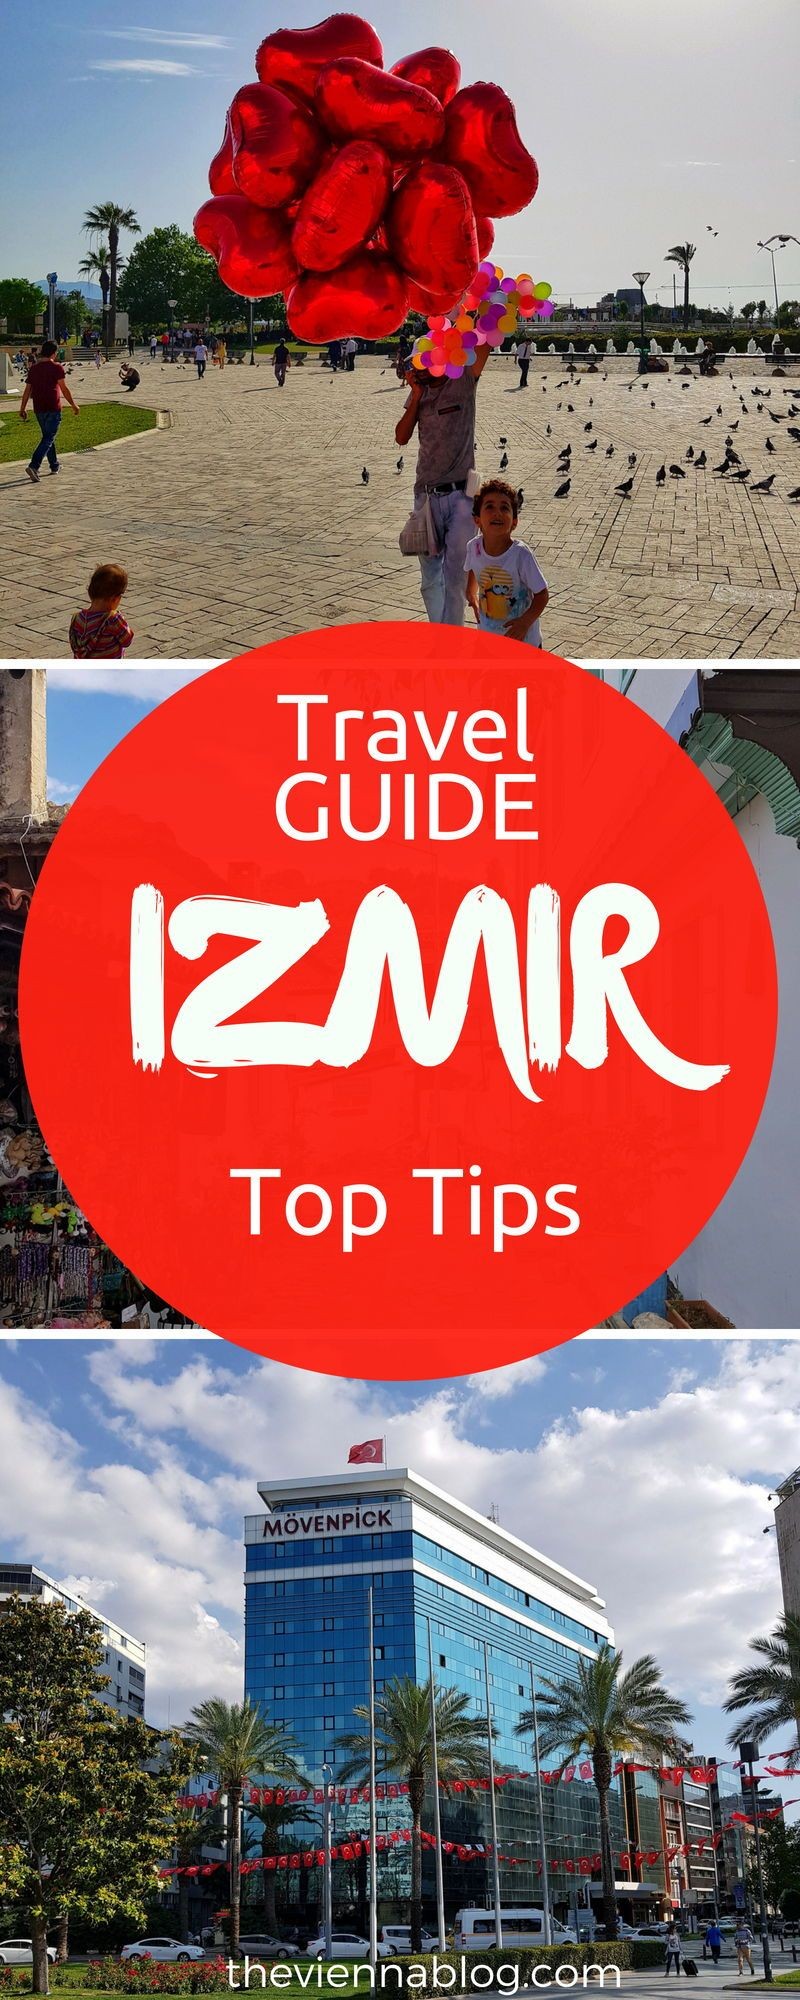 Top 10 Ultimate Things To See And Do In Izmir Turkey The Vienna Blog Lifestyle Travel Blog In Vienna City Travel Travel Turkey Top Attractions